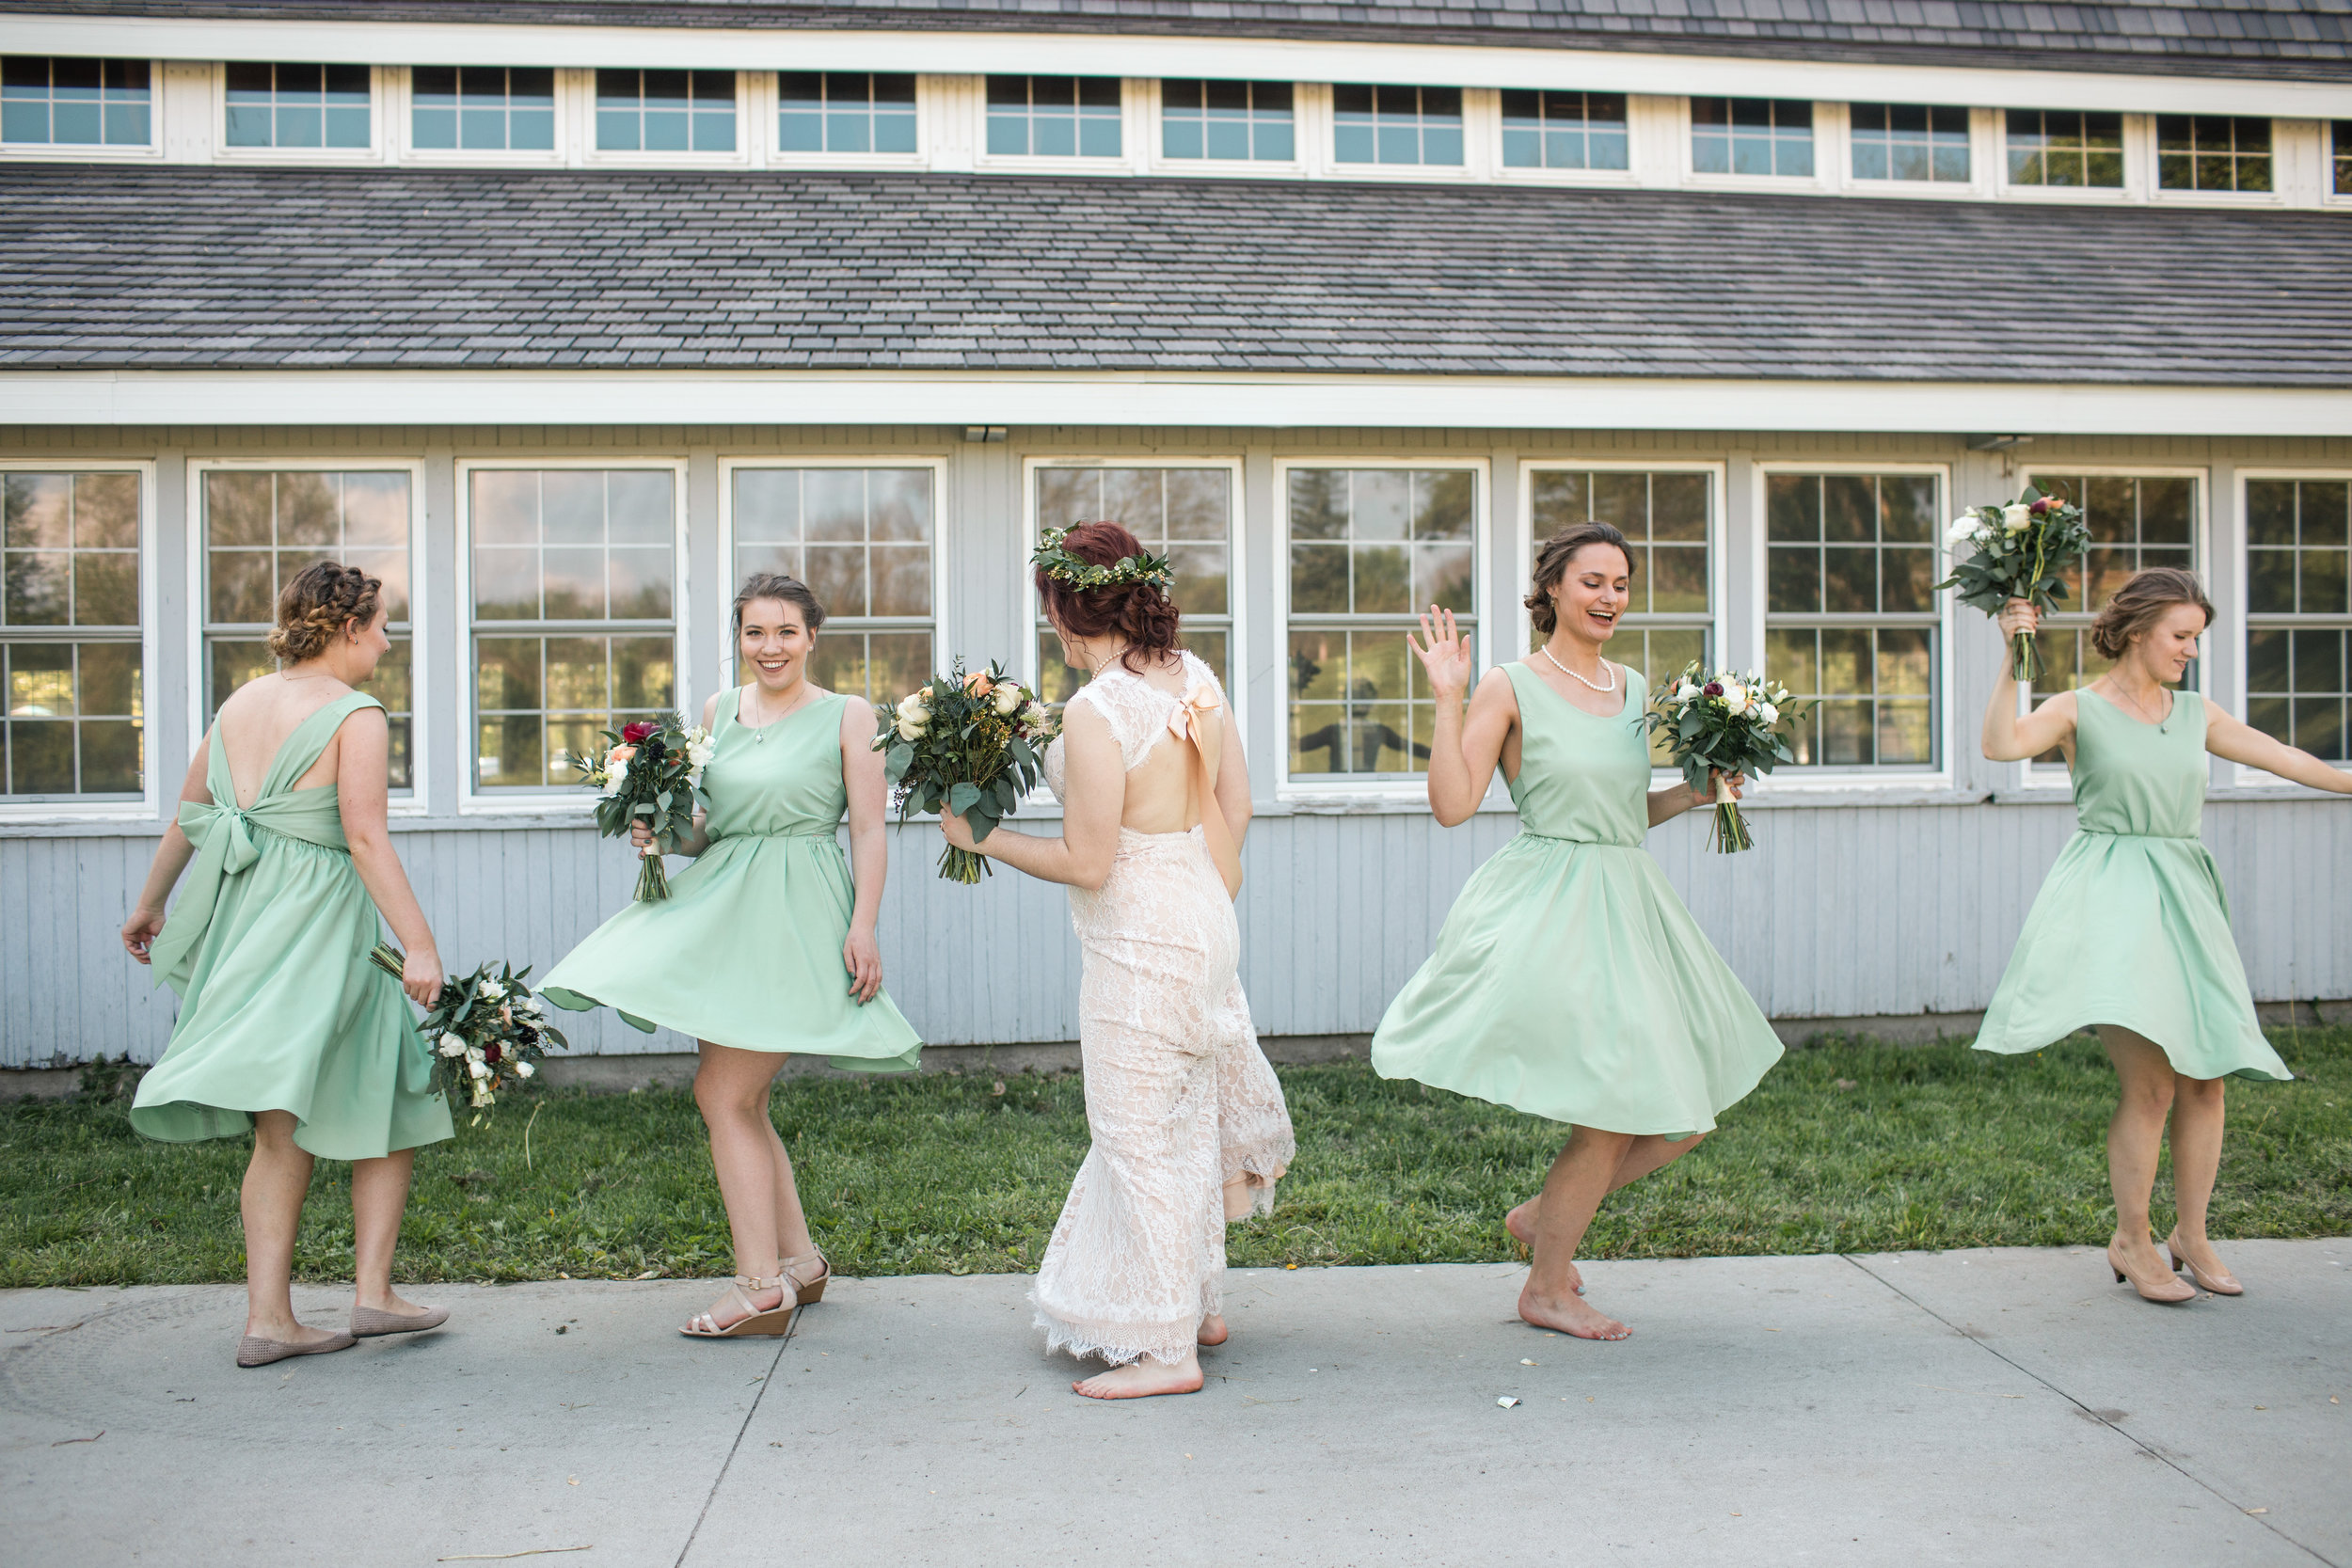 bridesmaids twirling with the bride candid des moines iowa weddings